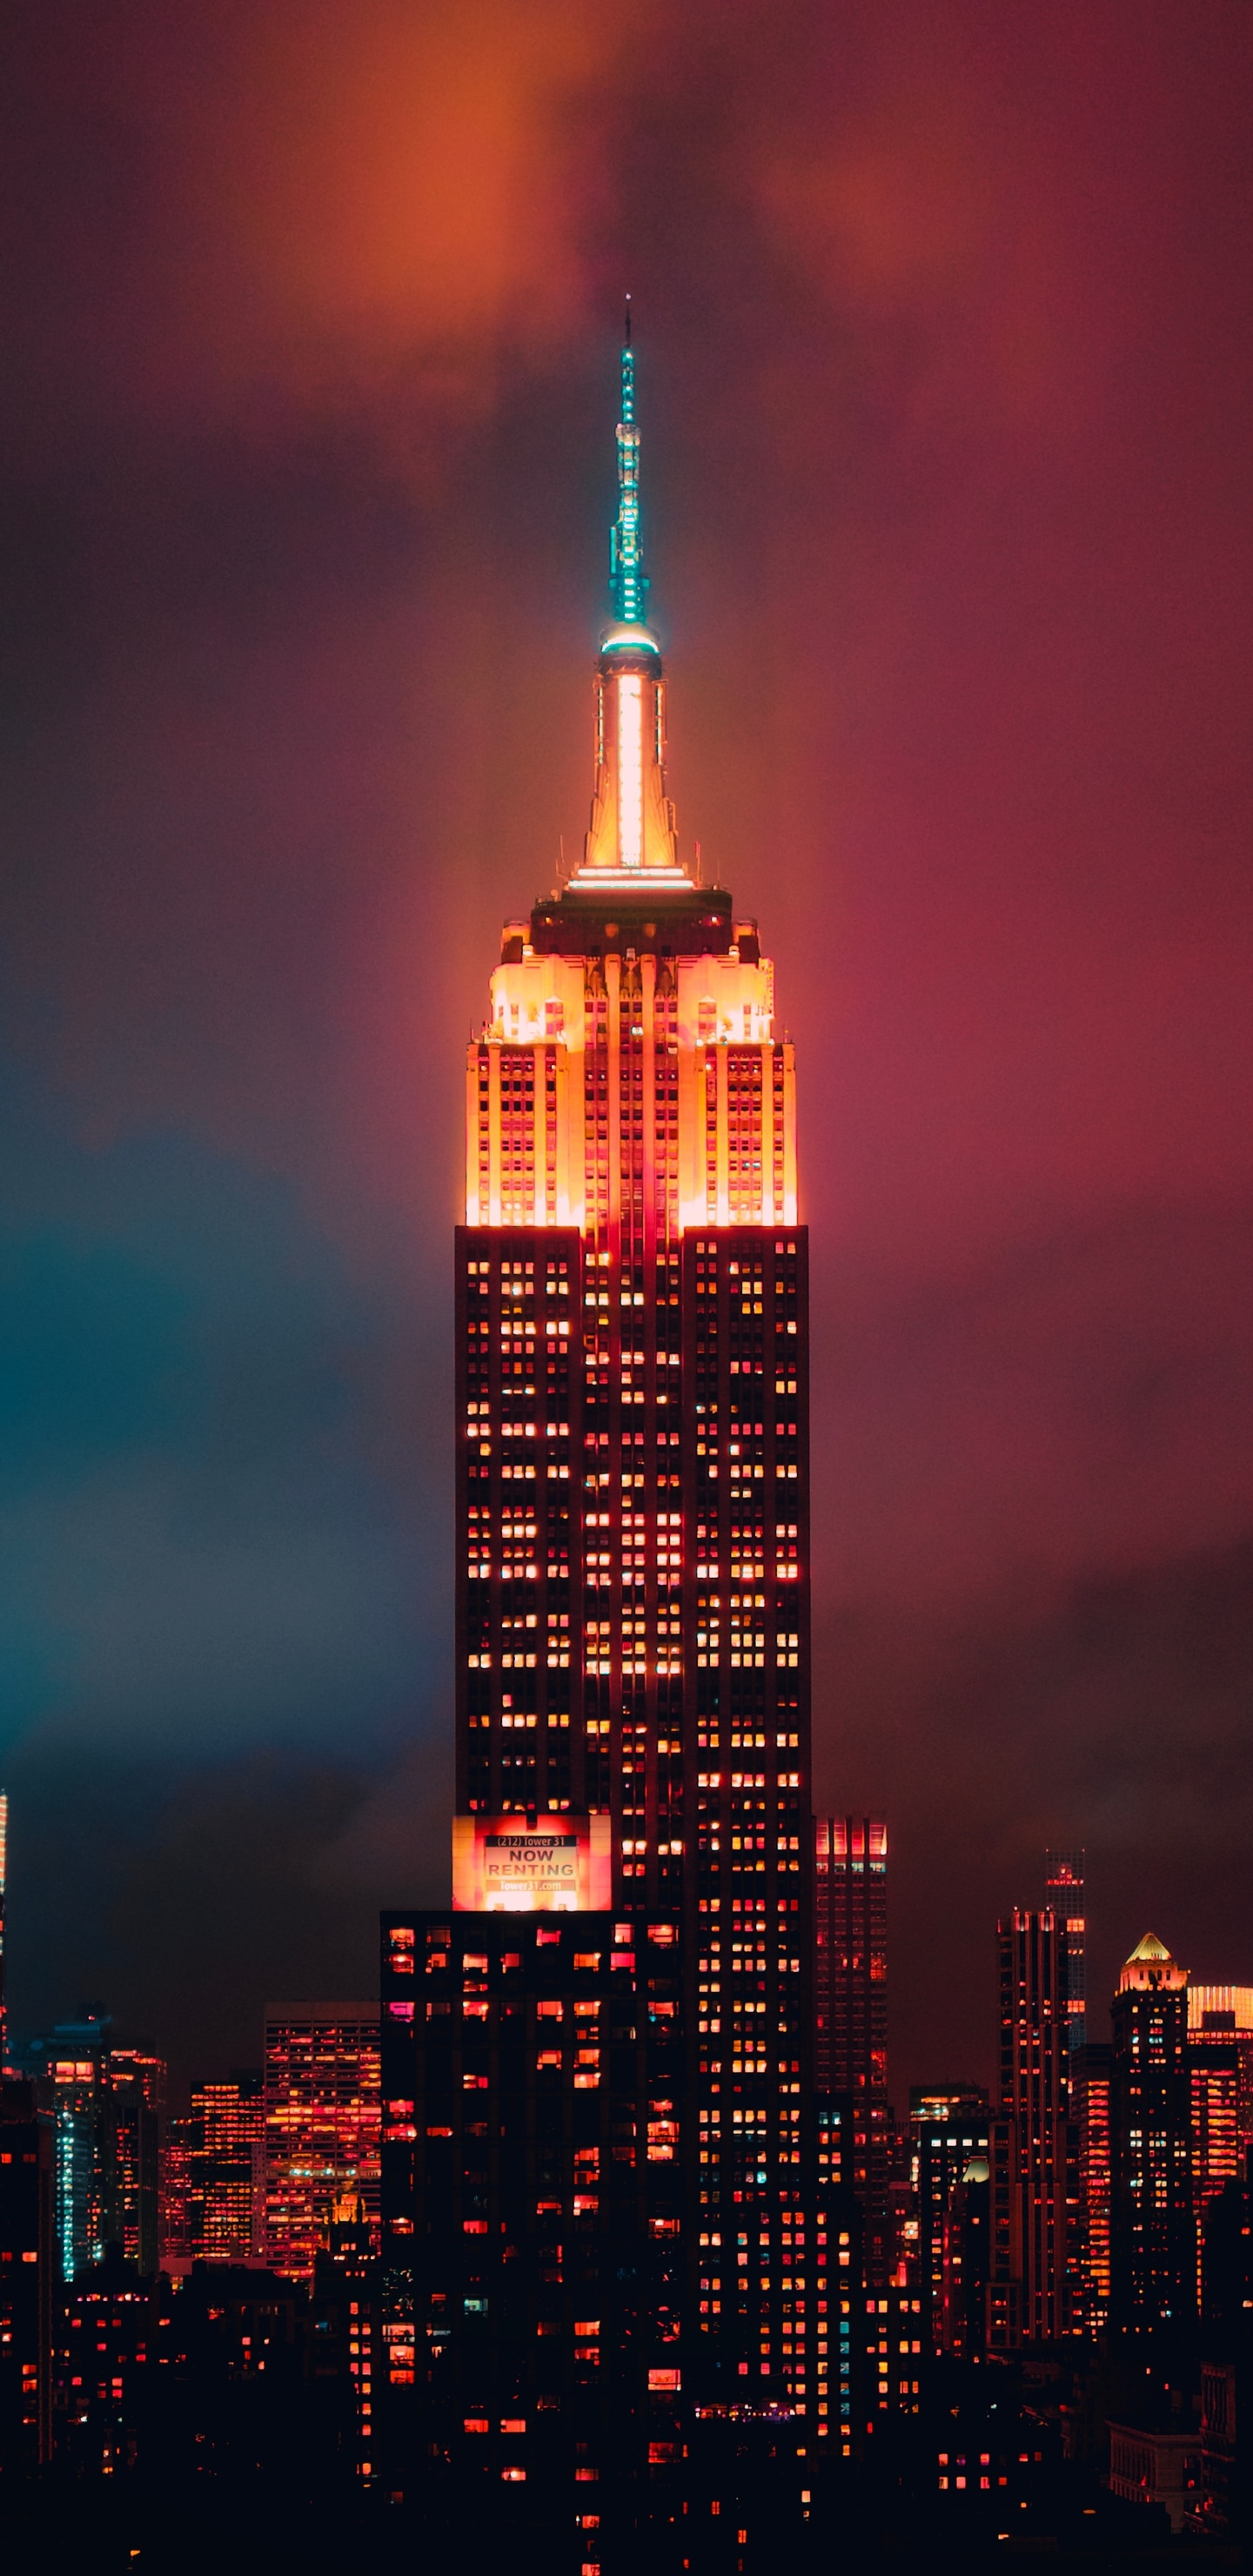 empire-state-building-night-5k-oa.jpg